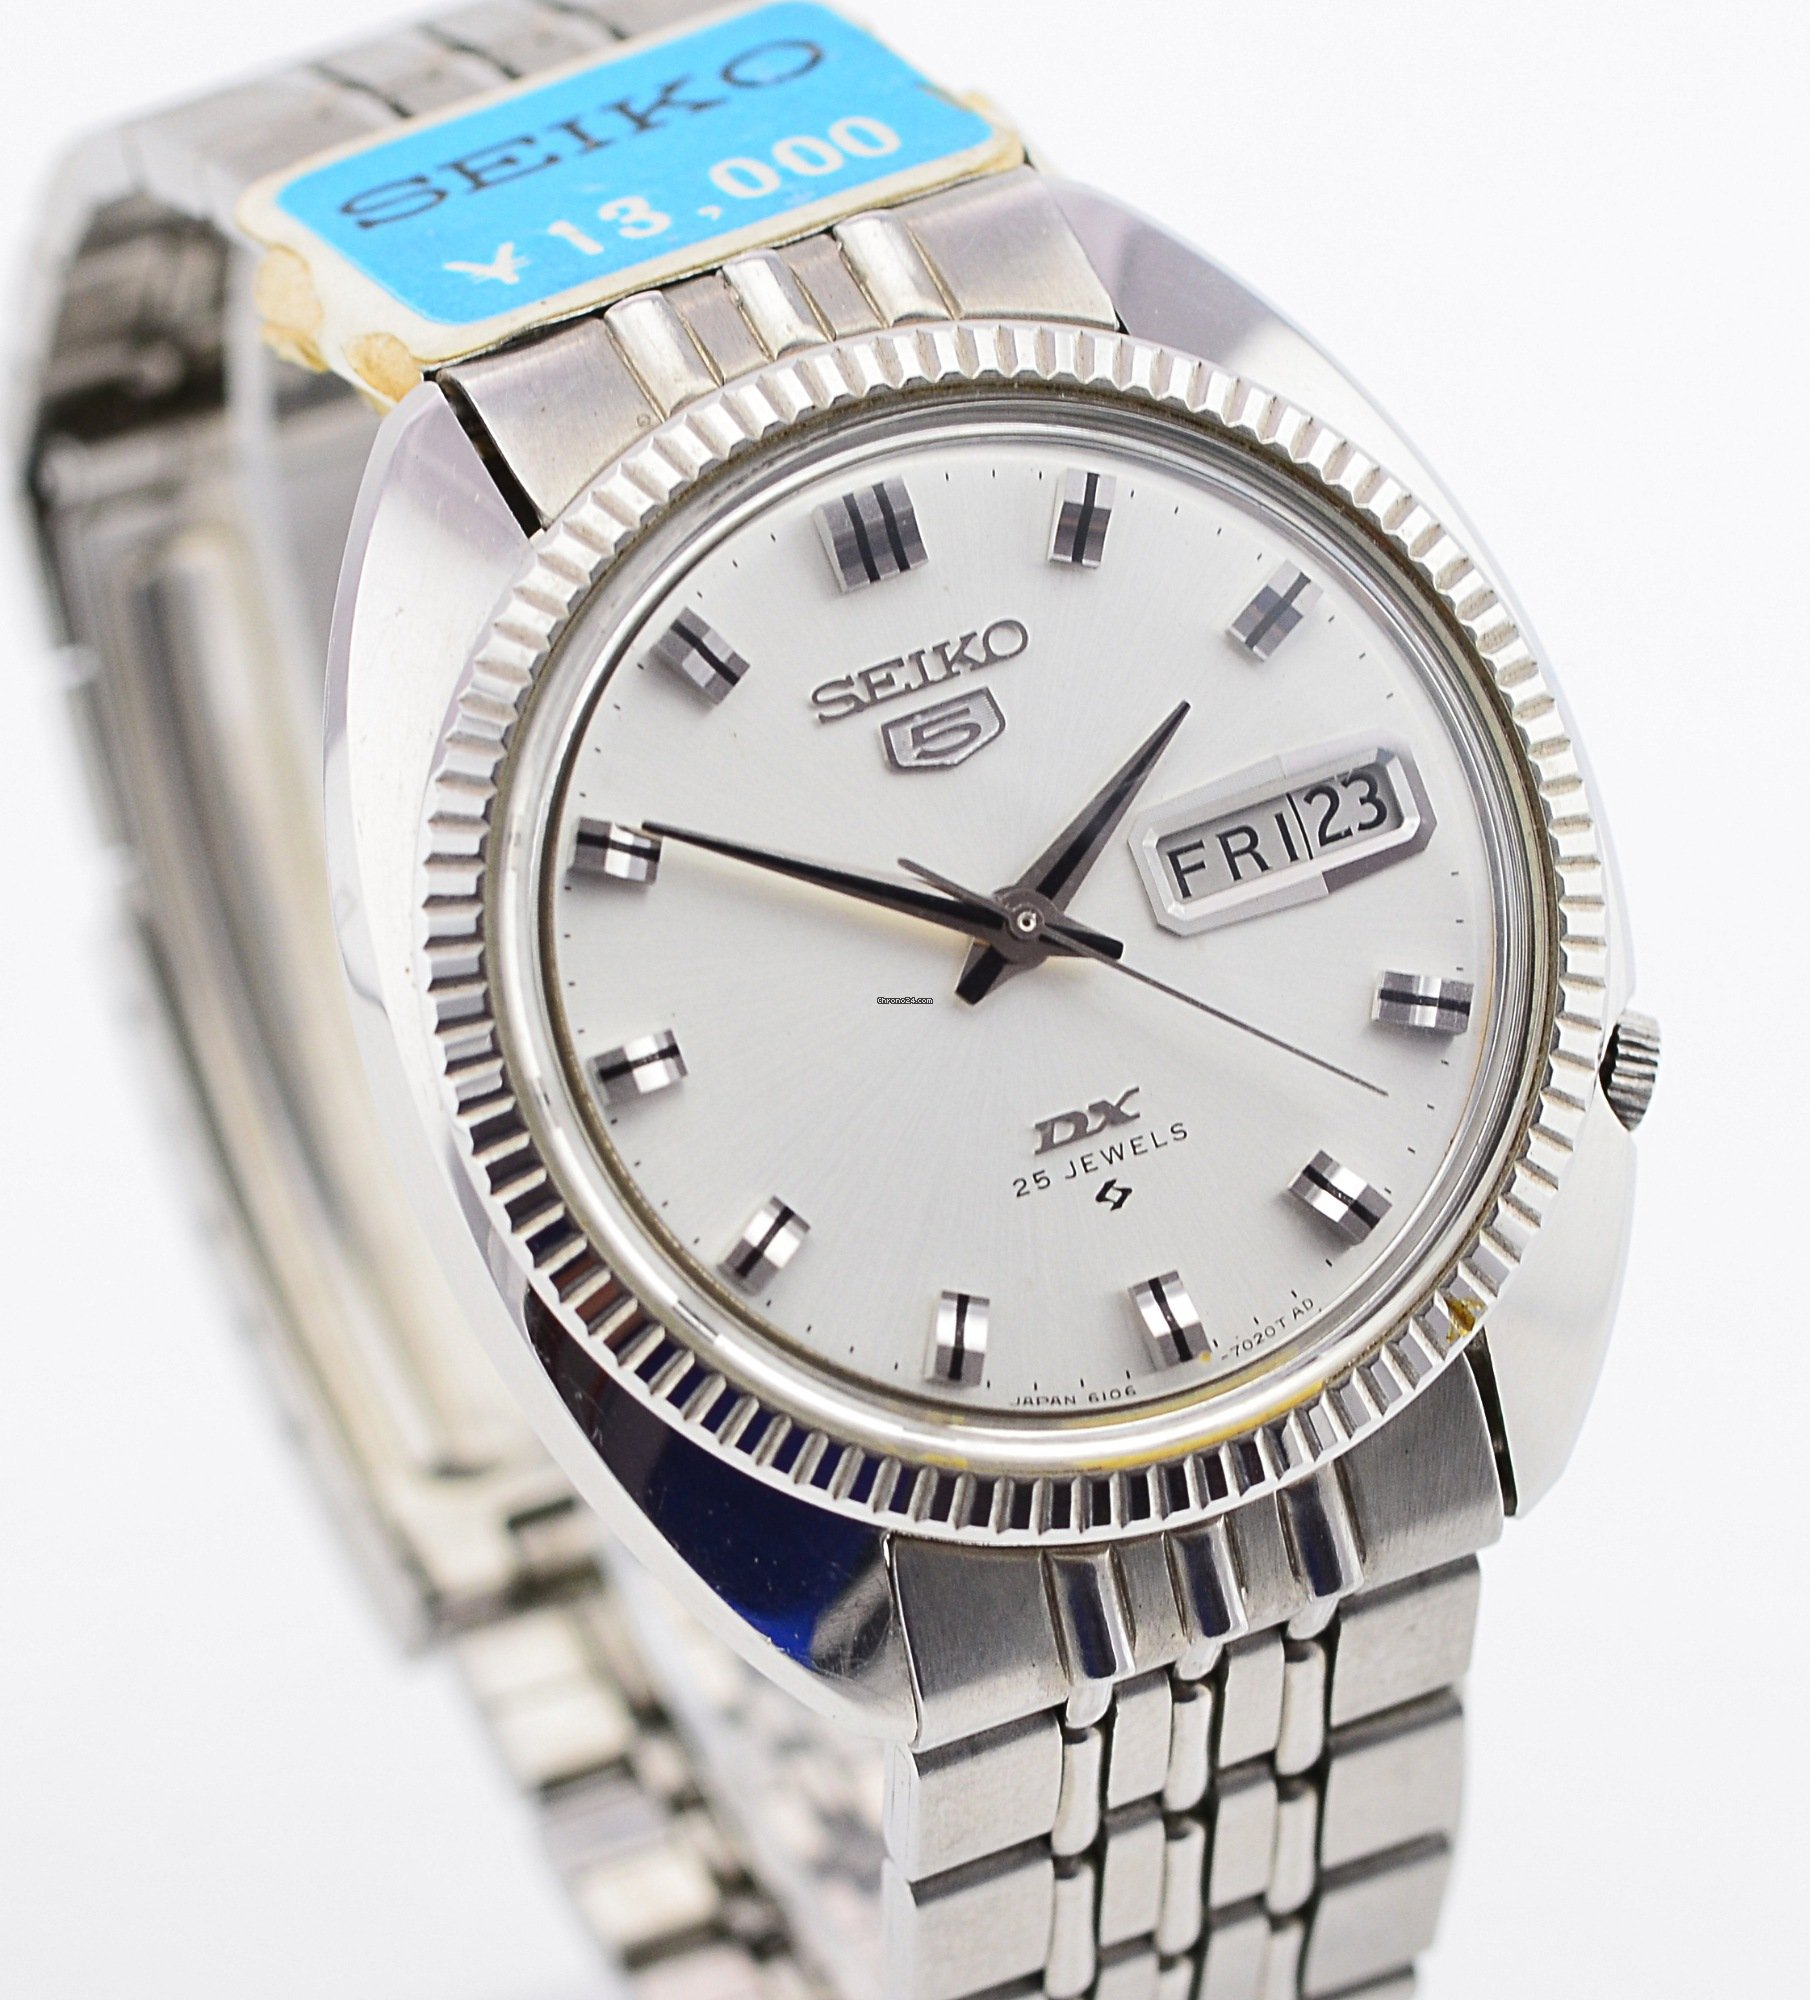 Seiko 5 DX Silver Automatic Watch JDM Fluted Bezel NOS 6106